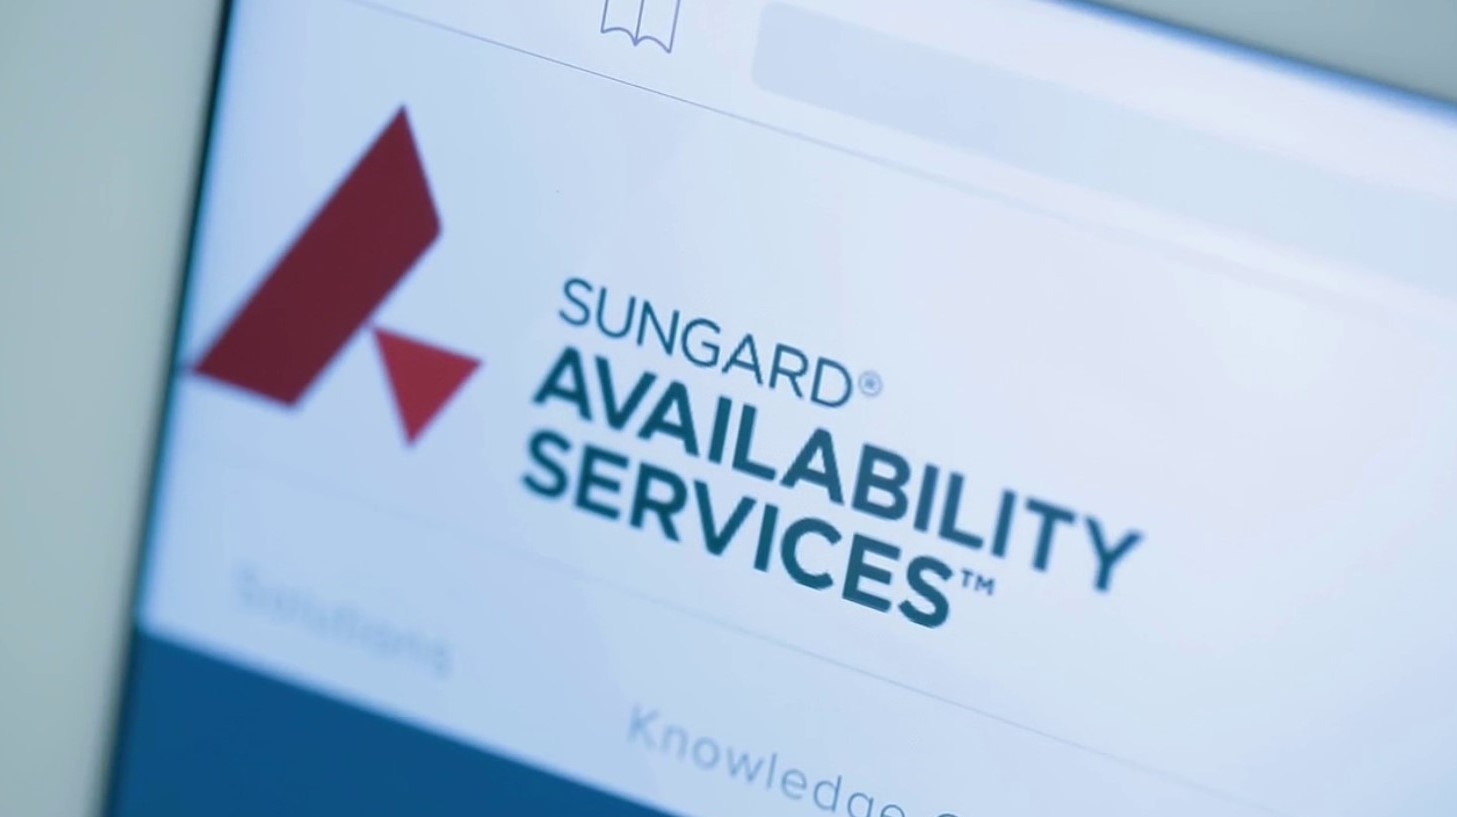 Wayne-Based Sungard Availability Services Expected to Enter Bankruptcy